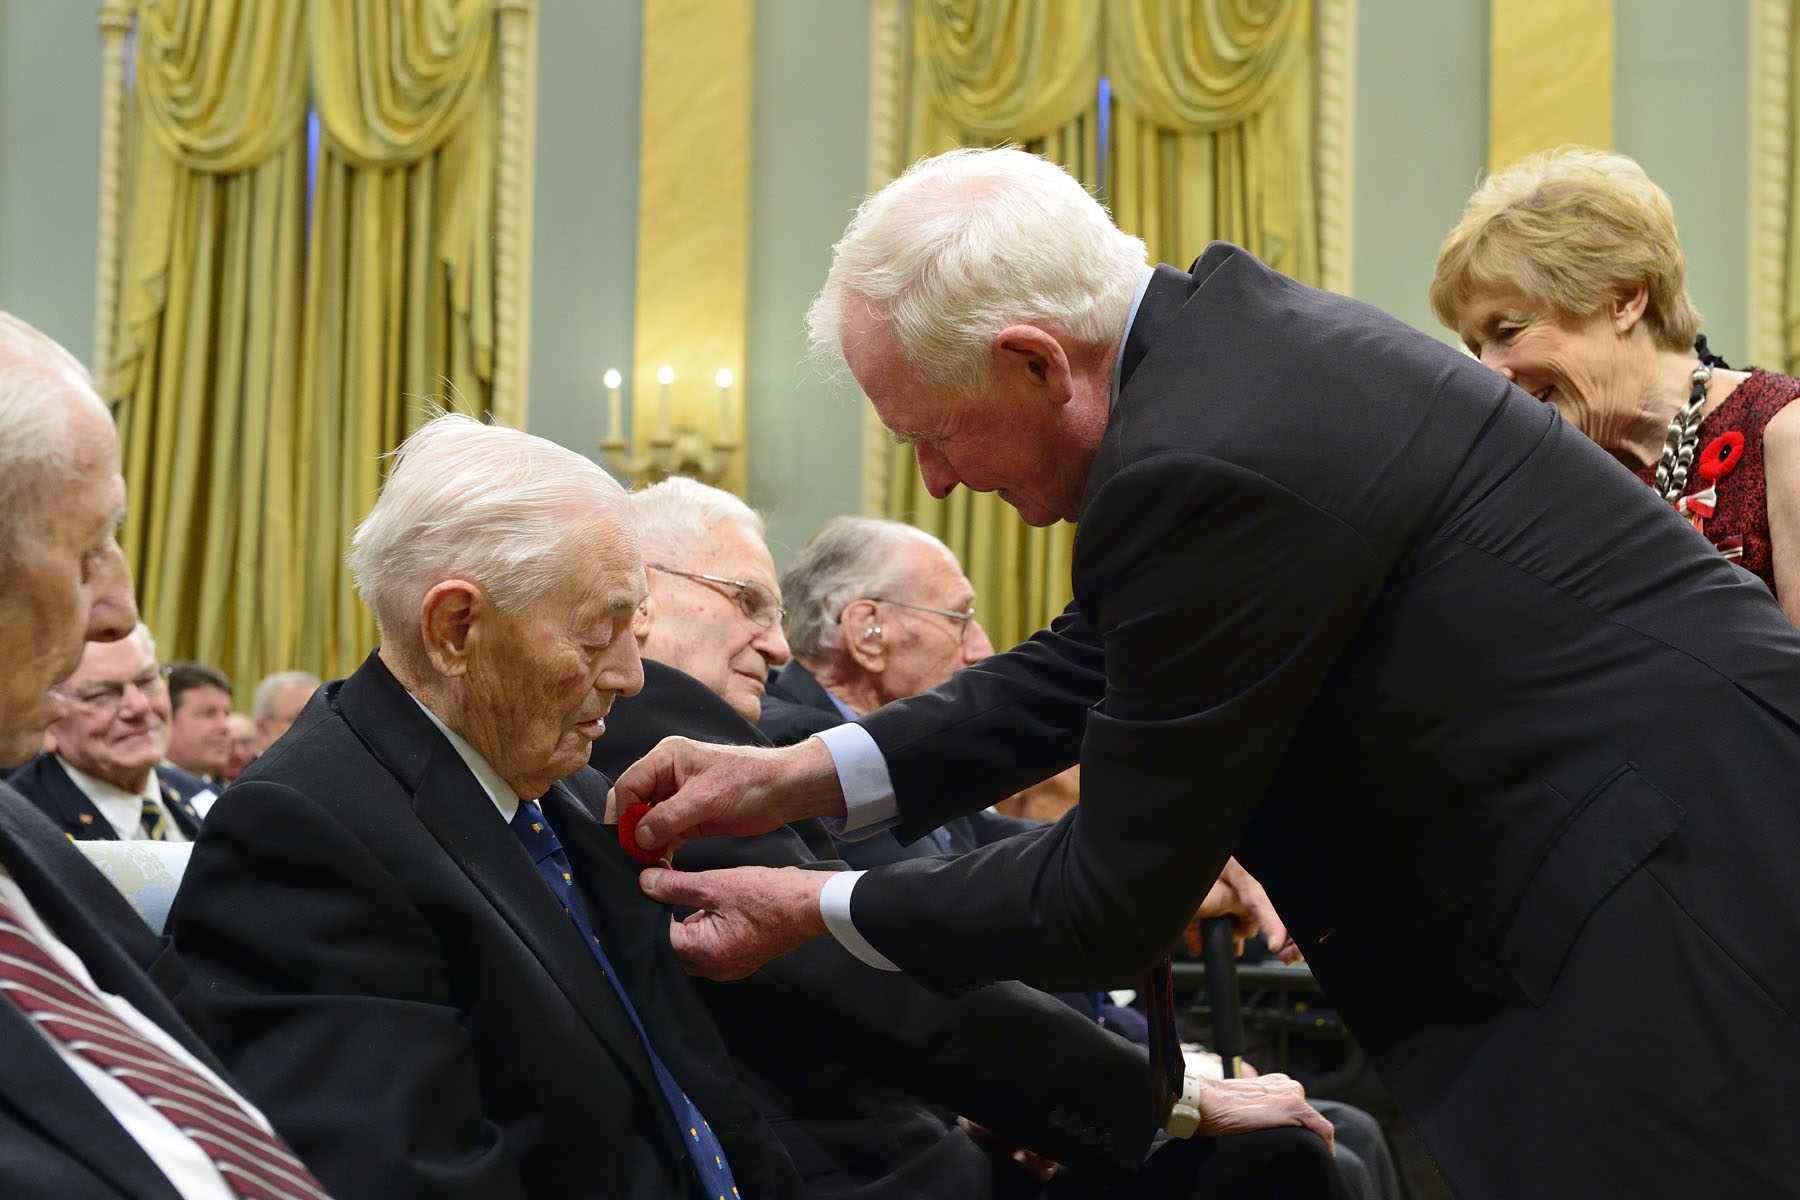 It is always a proud moment for the Governor General to pin a poppy on those who have given so much to this country.